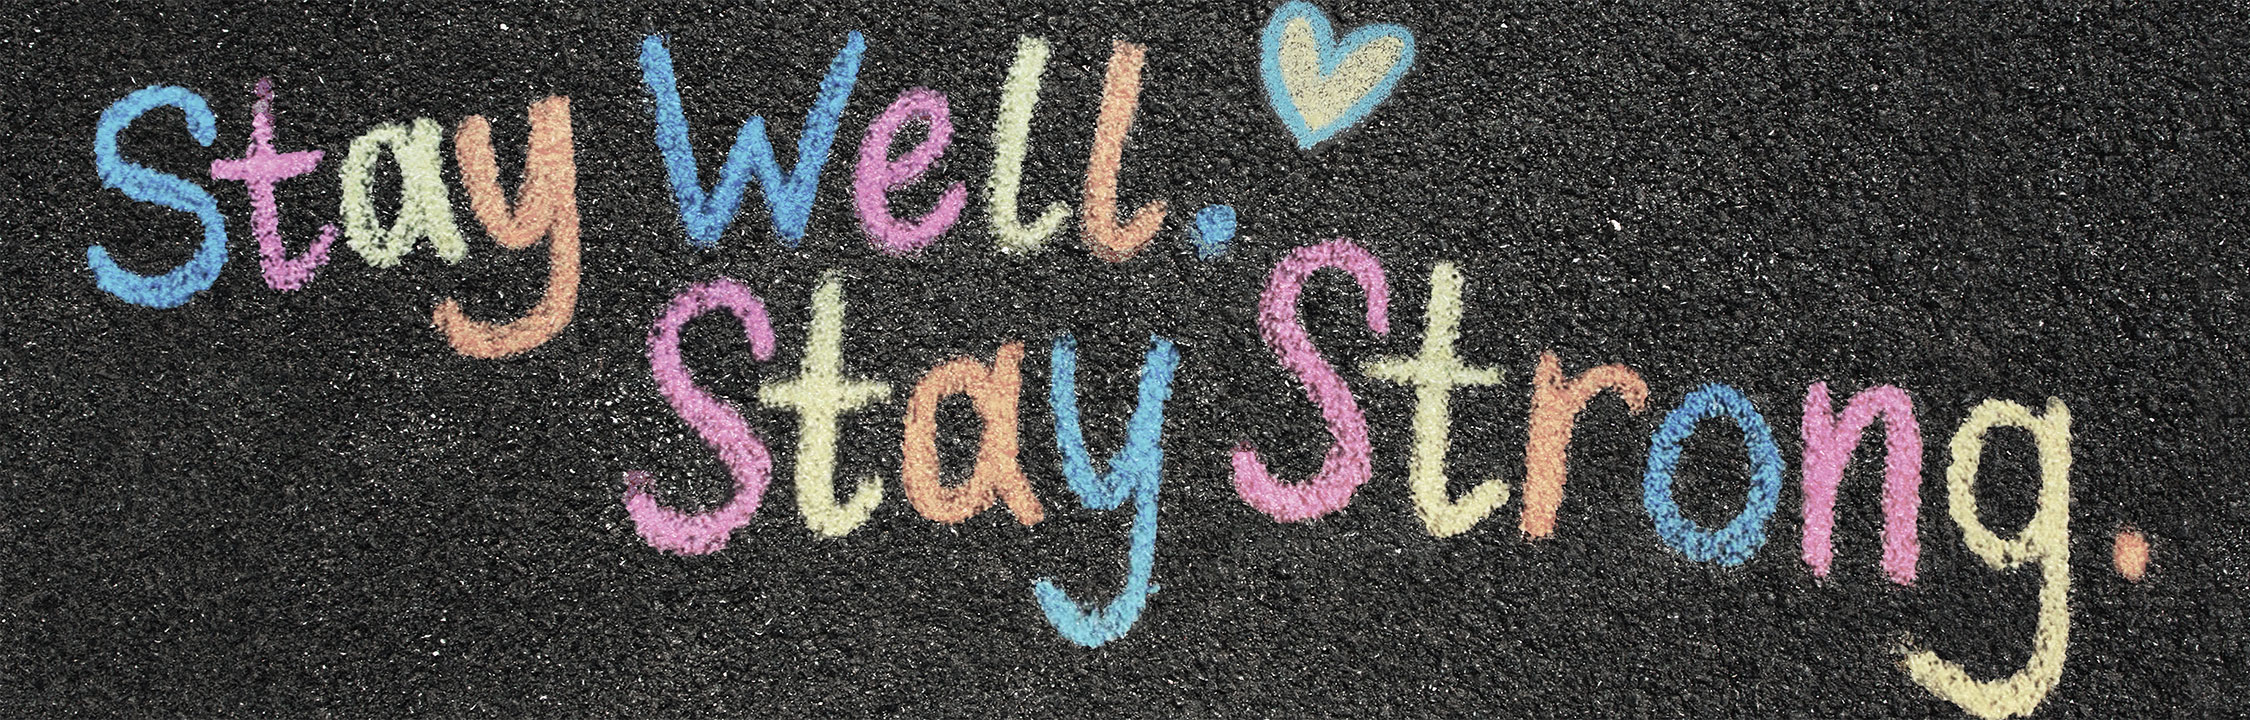 Stay-Well-Stay-Strong-BannerWEB - Trinity Health